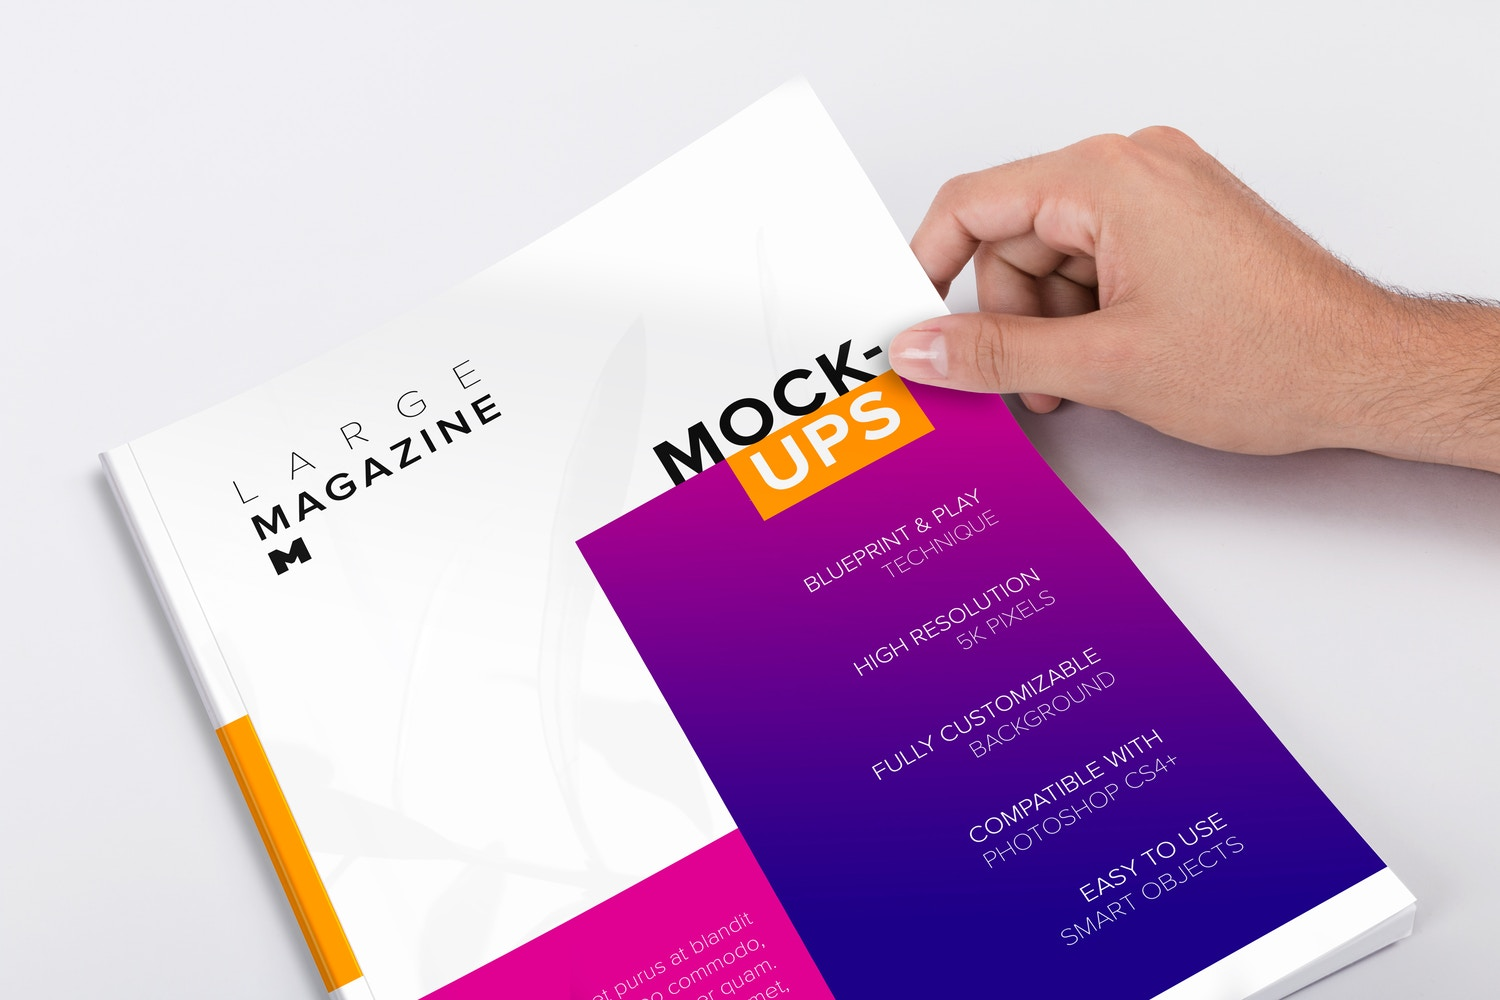 Large Magazine Cover Mockup 03 by Original Mockups on Original Mockups